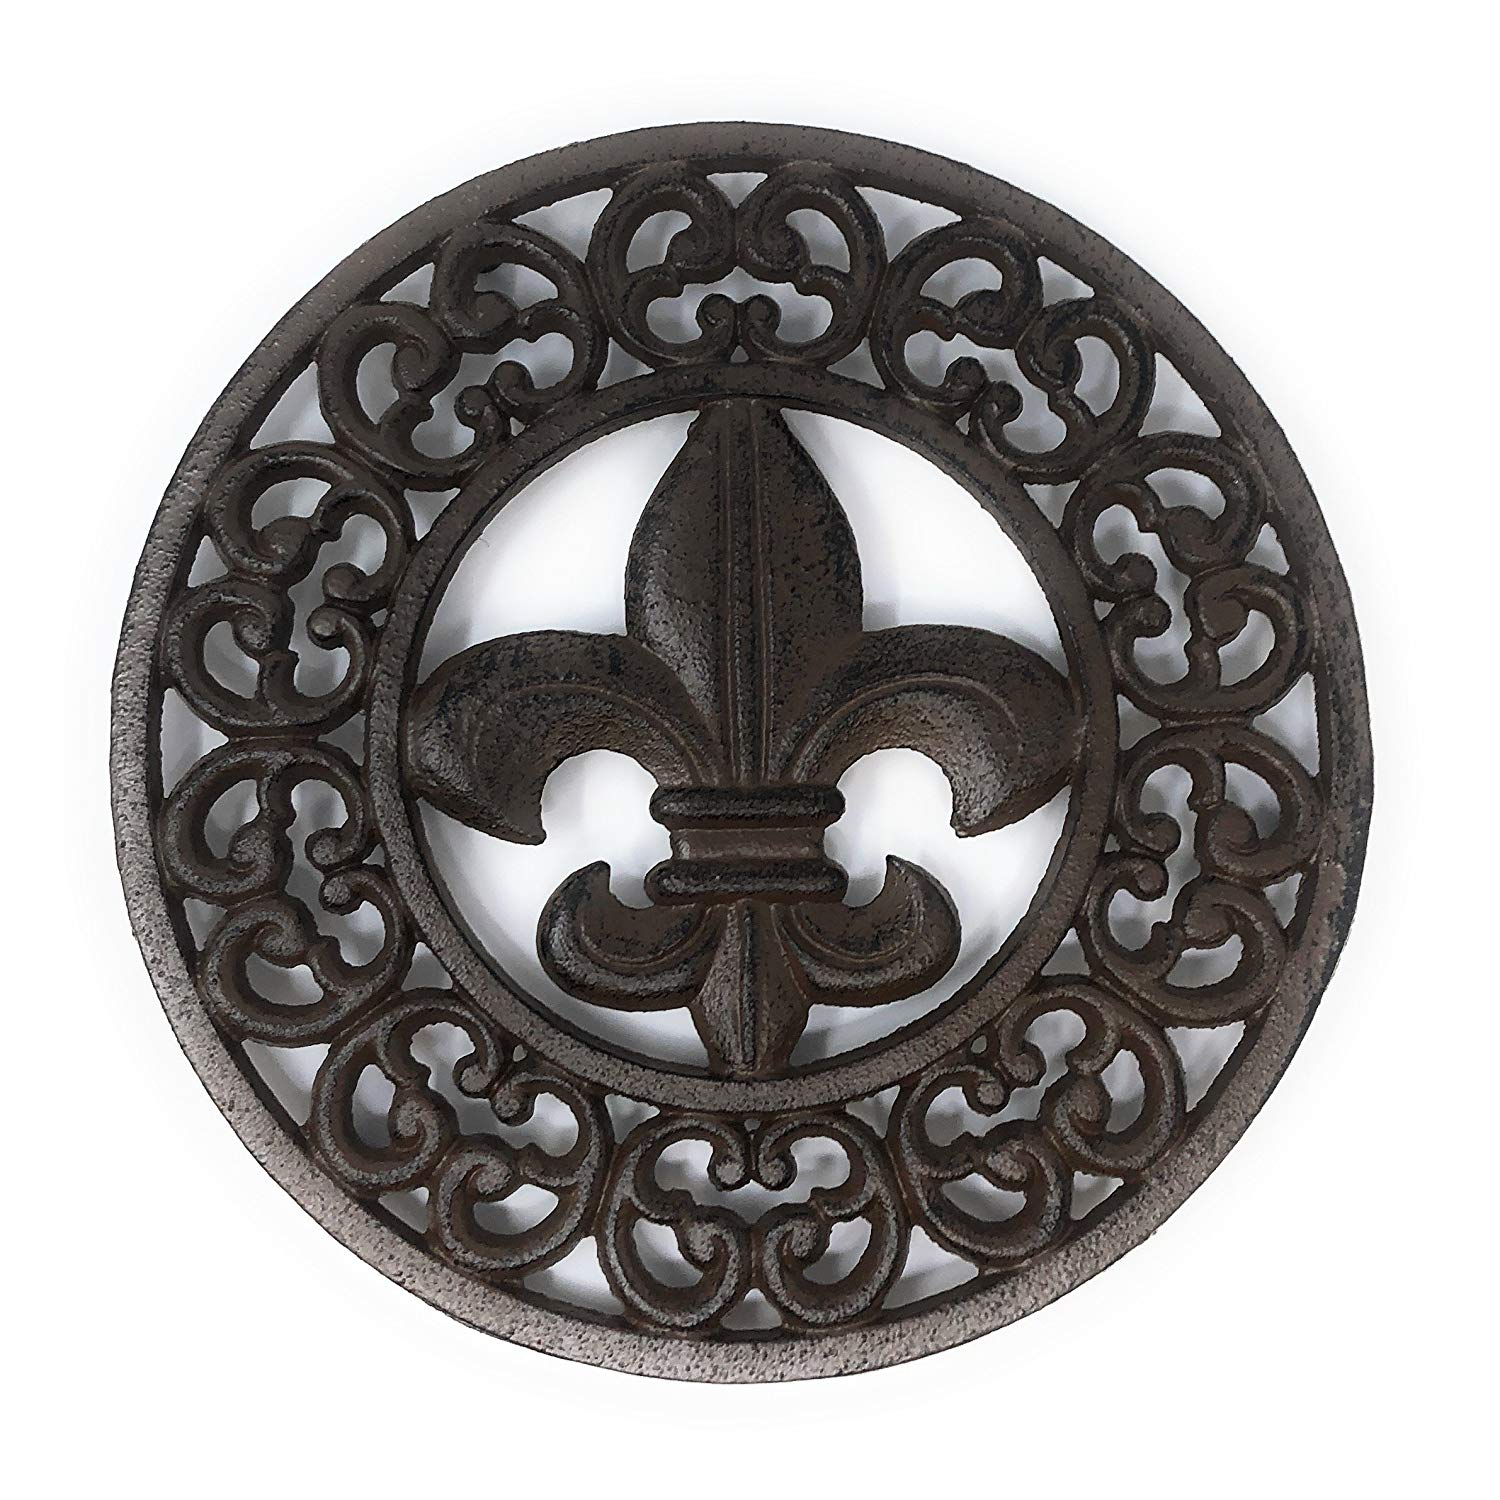 Cast Iron Fleur De Lis Trivet - Wall Hanging or Counter Top with Elegant Scroll work